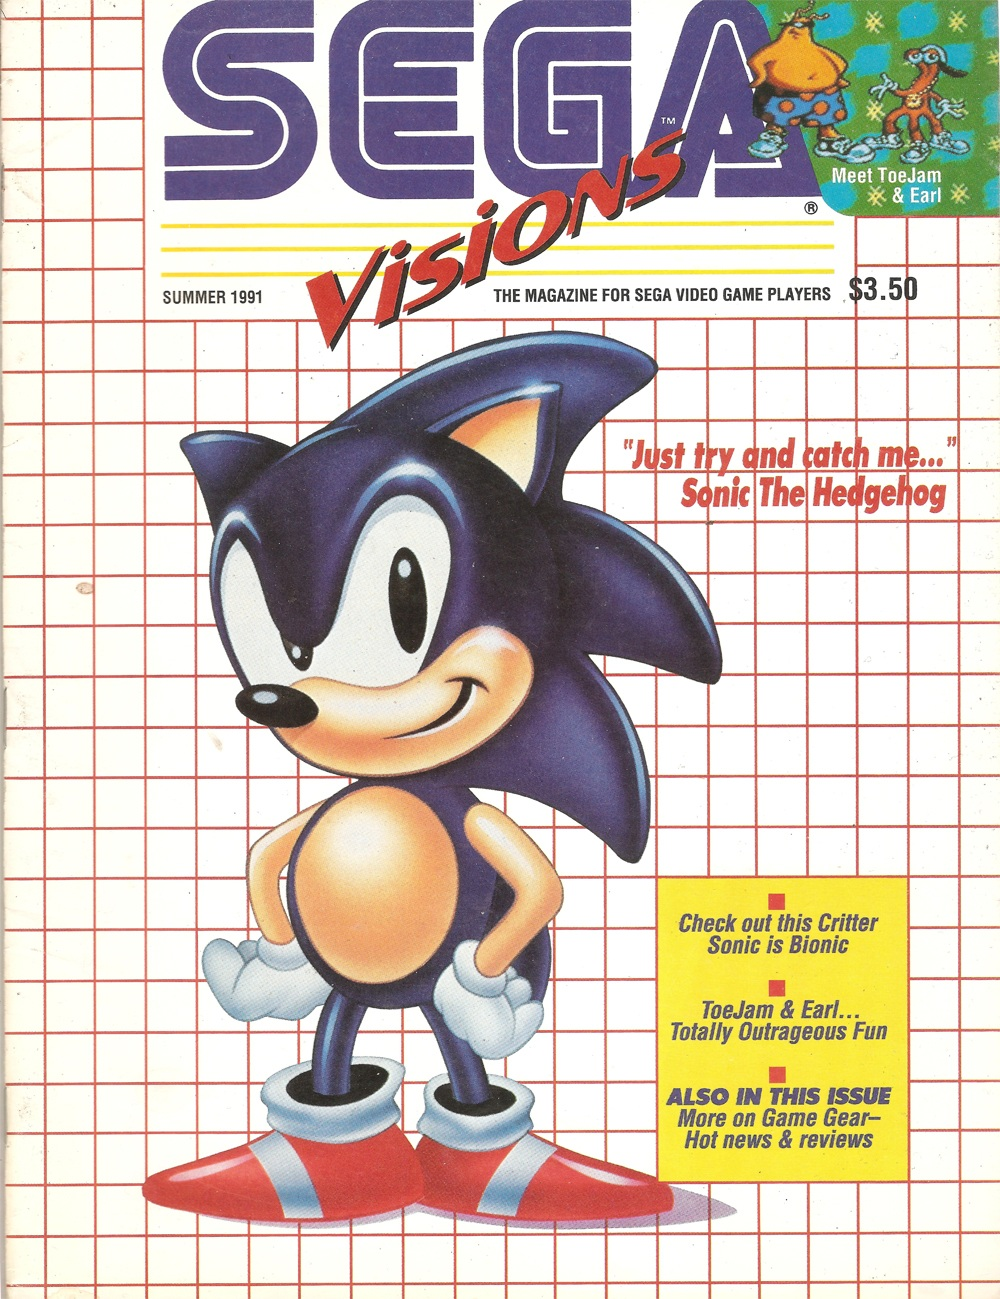 Classic Sega Magazine Corner Sega Visions Introduces Us To Sonic 20 Years Ago Segabits 1 Source For Sega News